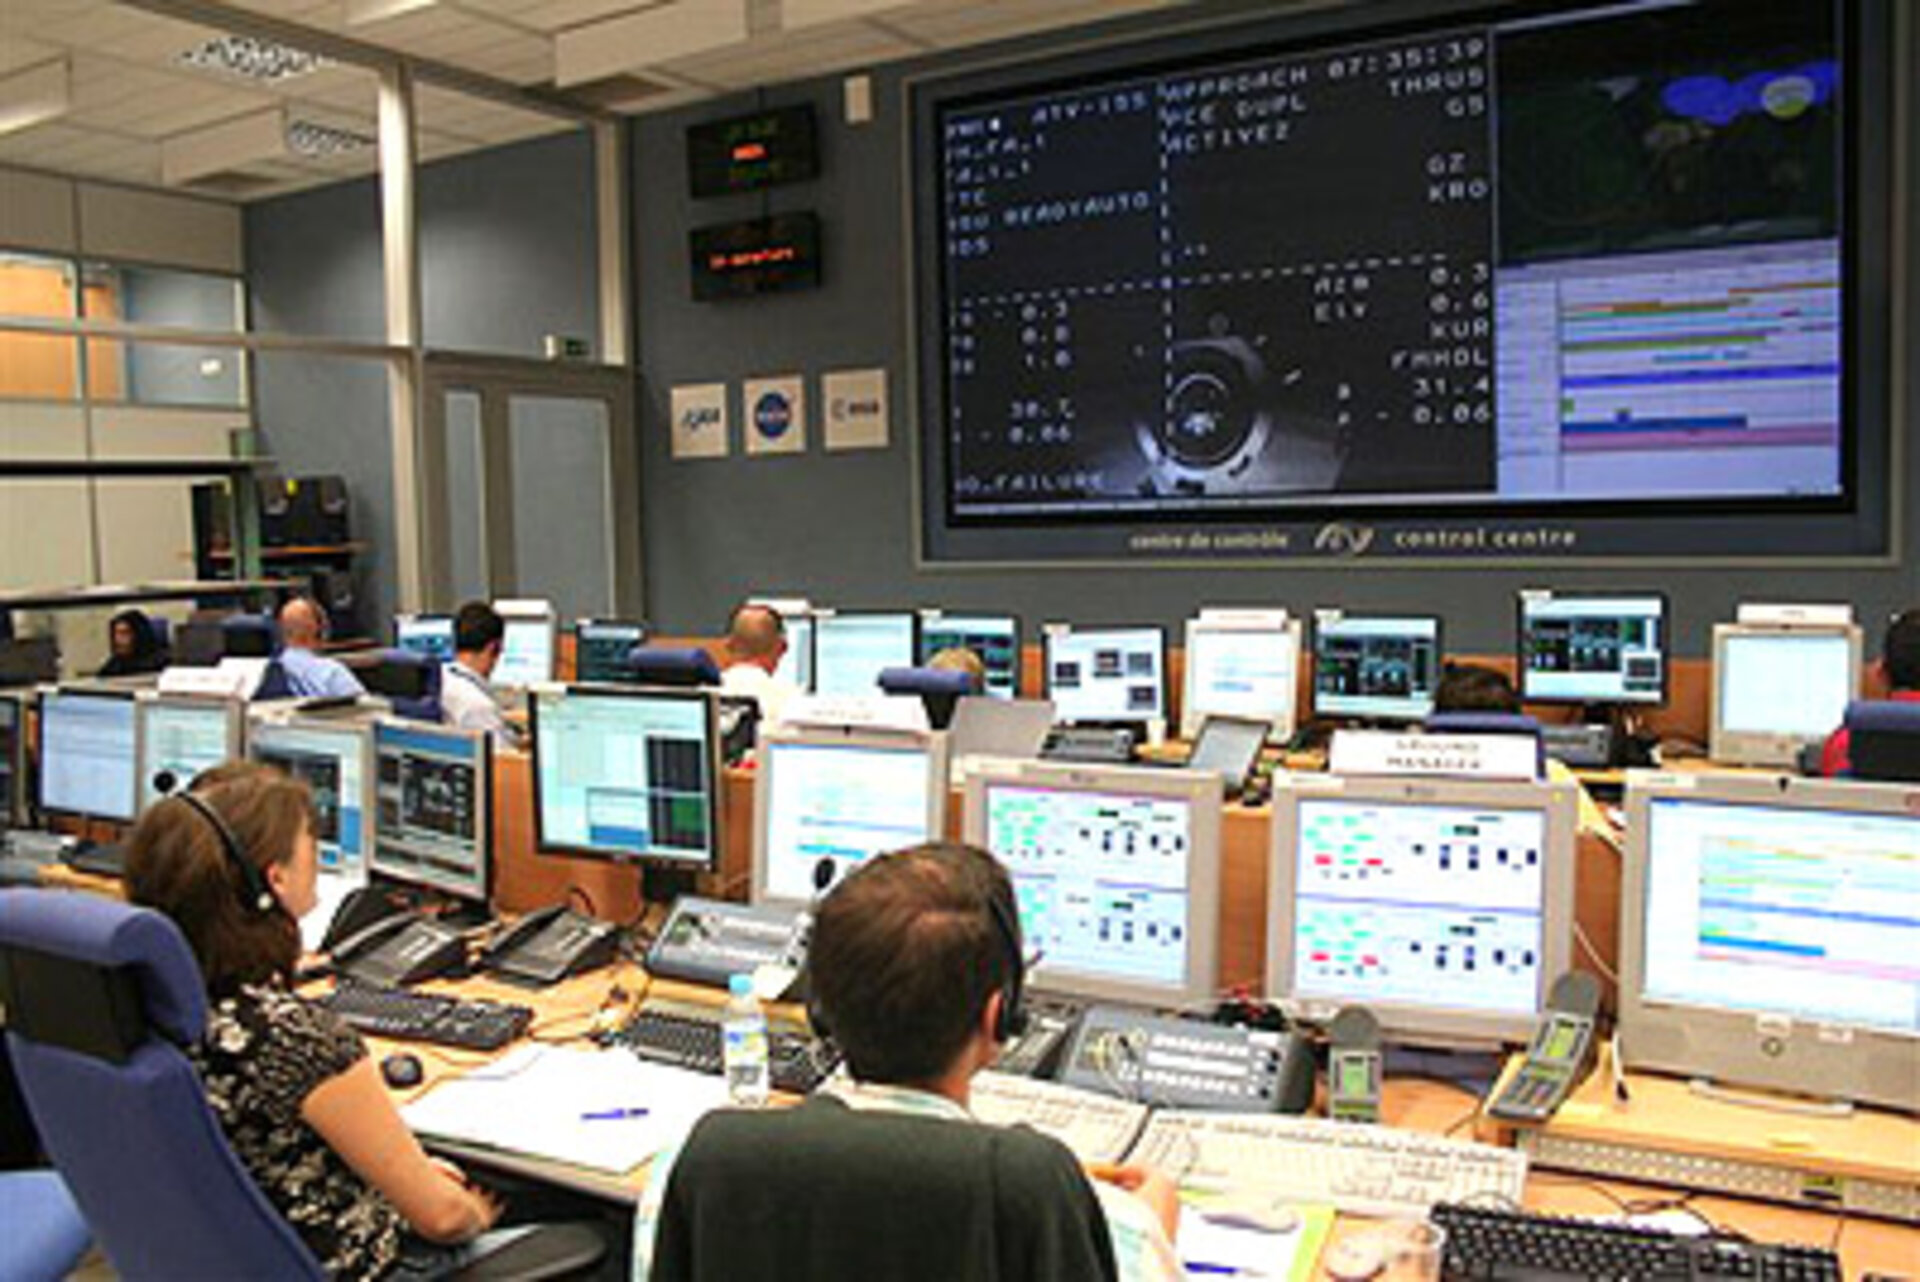 Mission controllers followed today's demonstration from the ATV Control Centre